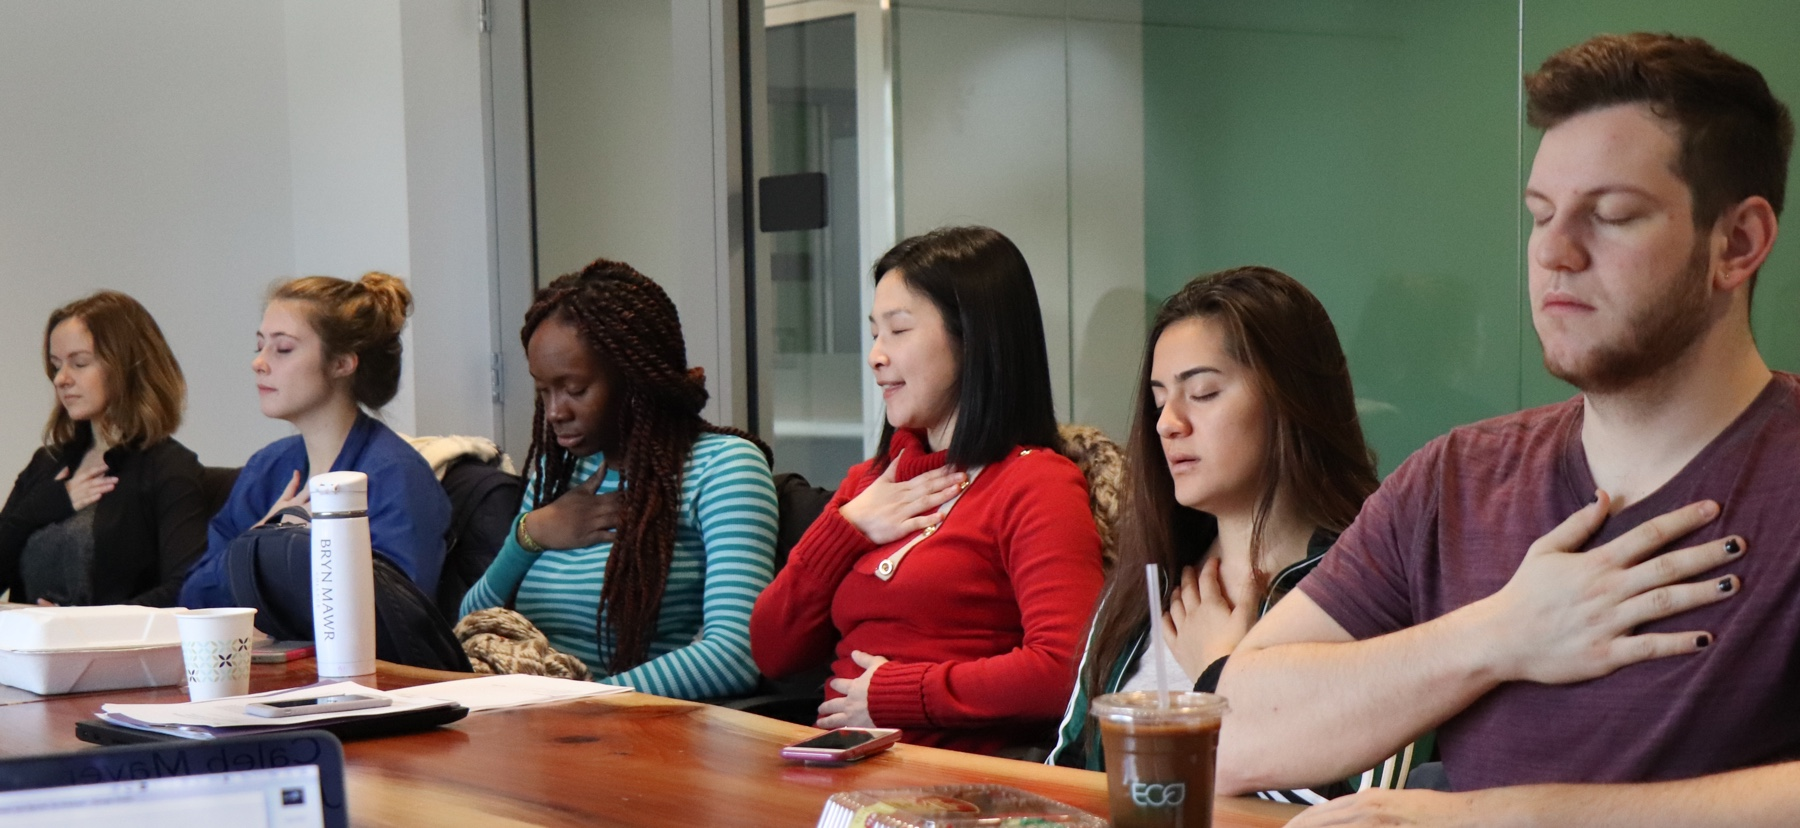 Students and a professor sit with hands over their hearts in a mindfulness exercise